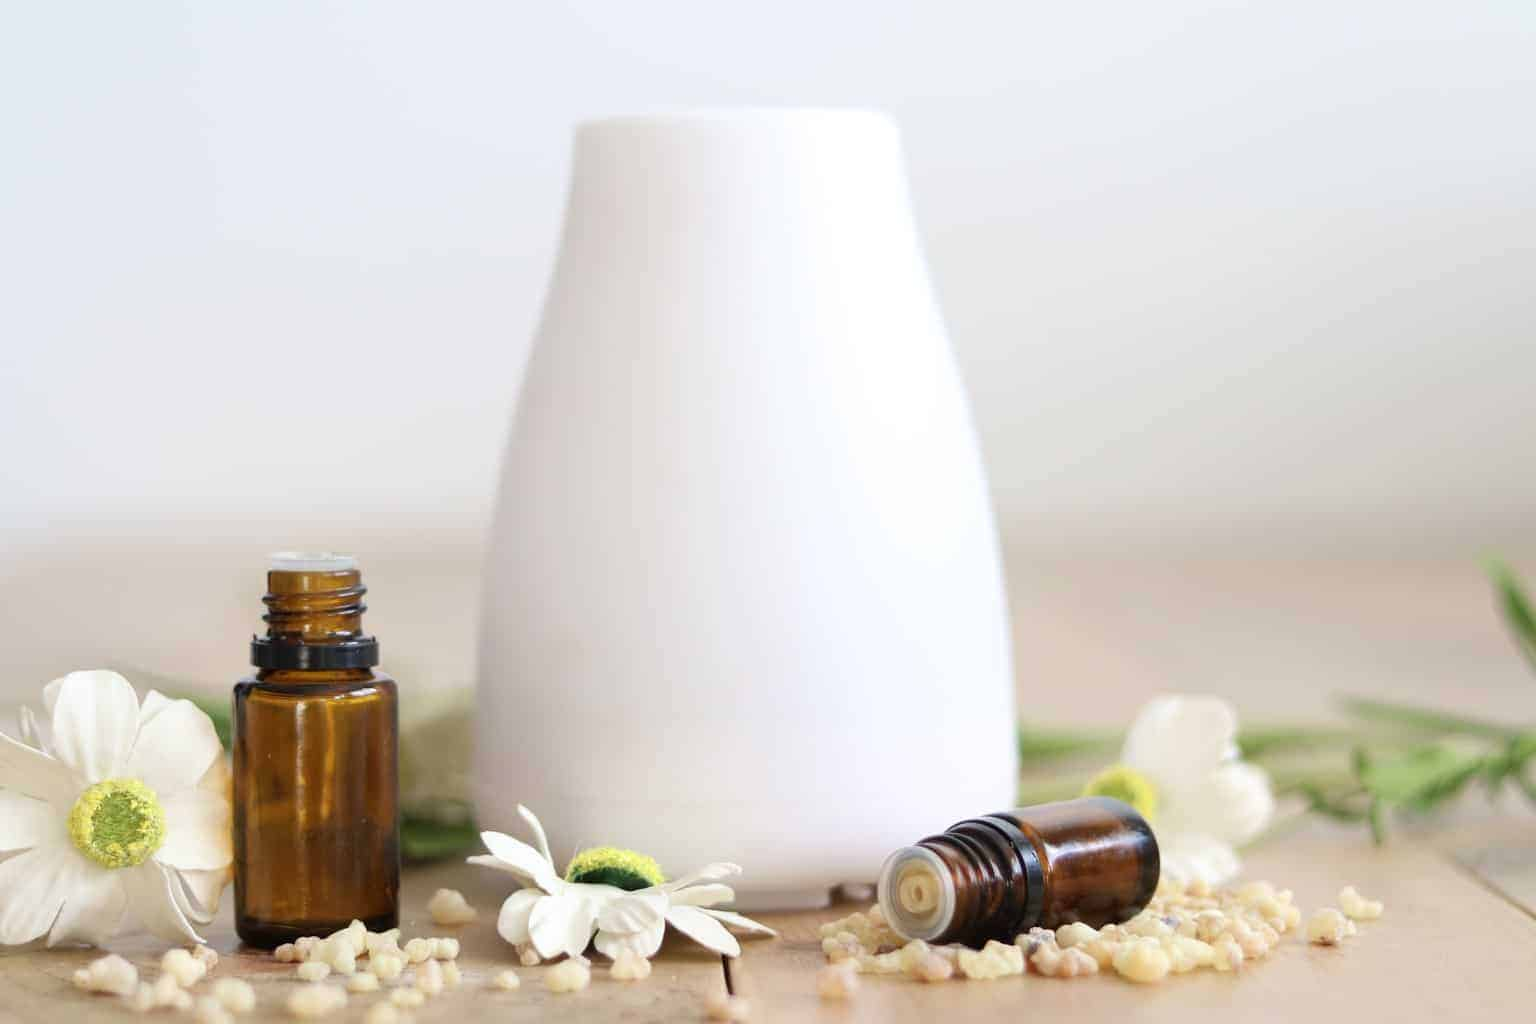 essential oil diffuser with oil bottles and flowers on wooden table